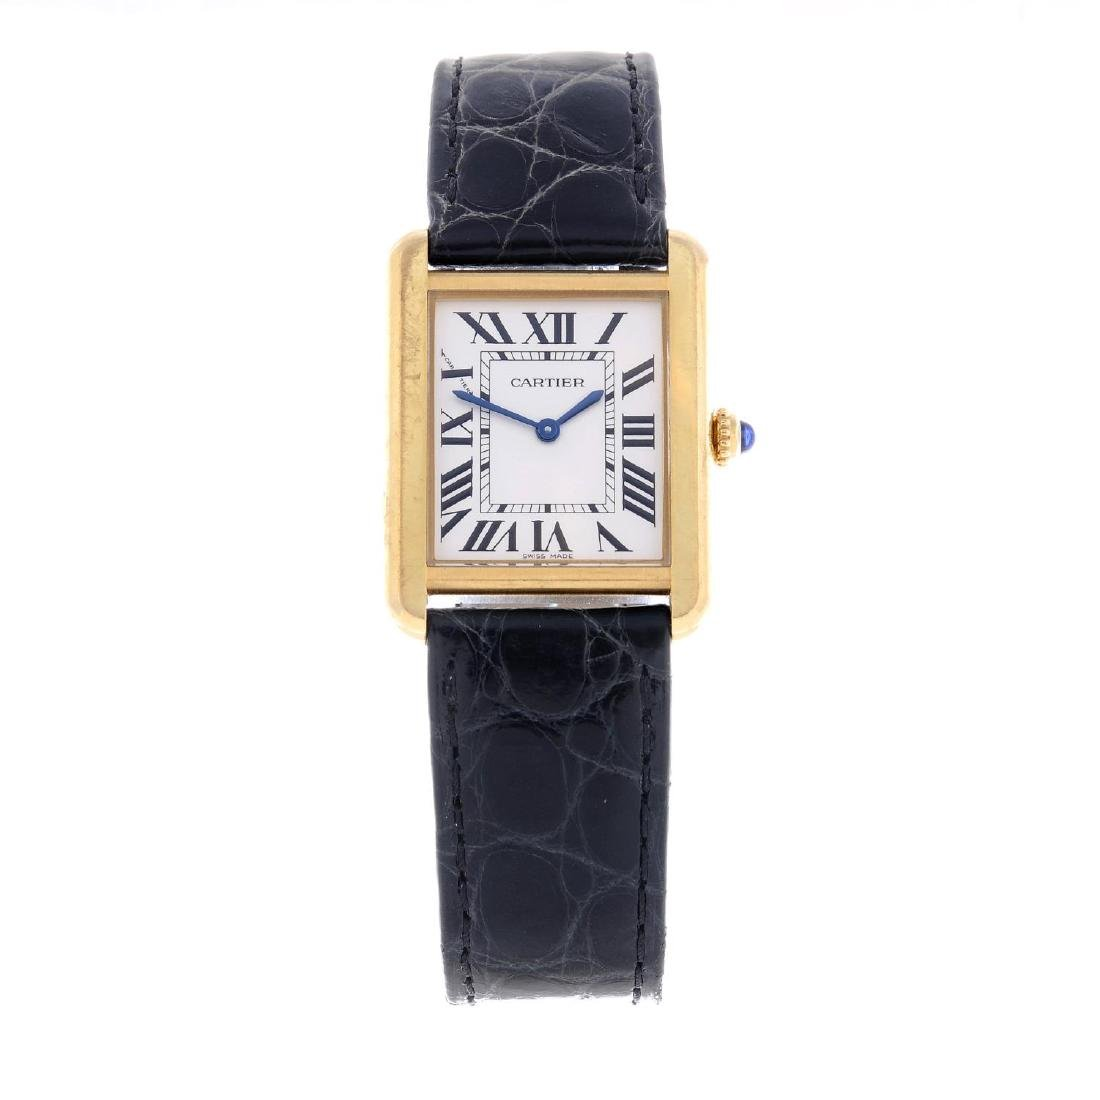 CARTIER - a Tank Solo wrist watch. Yellow metal case